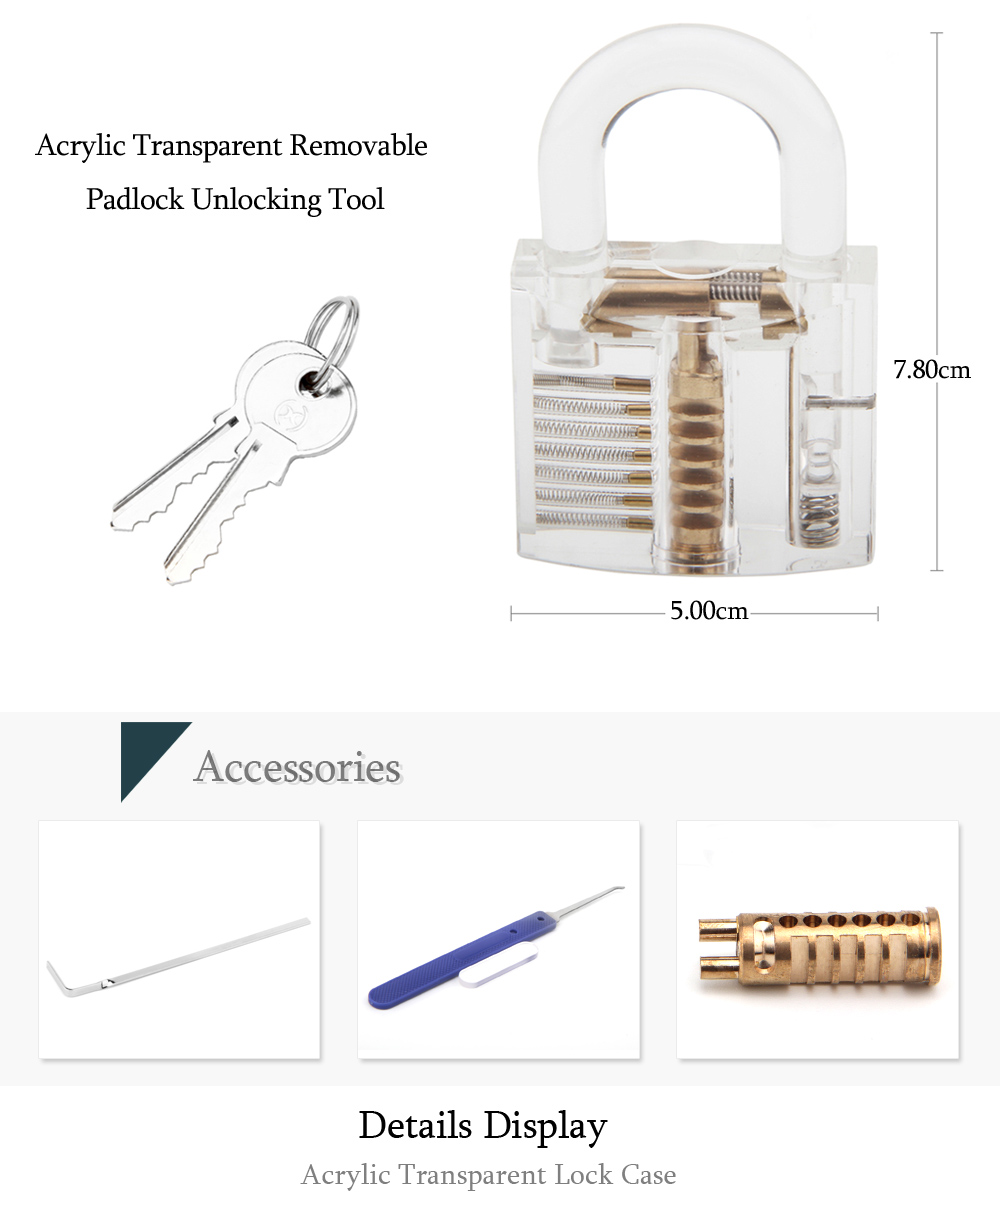 Acrylic Transparent Removable Padlock Practice Unlocking Tool